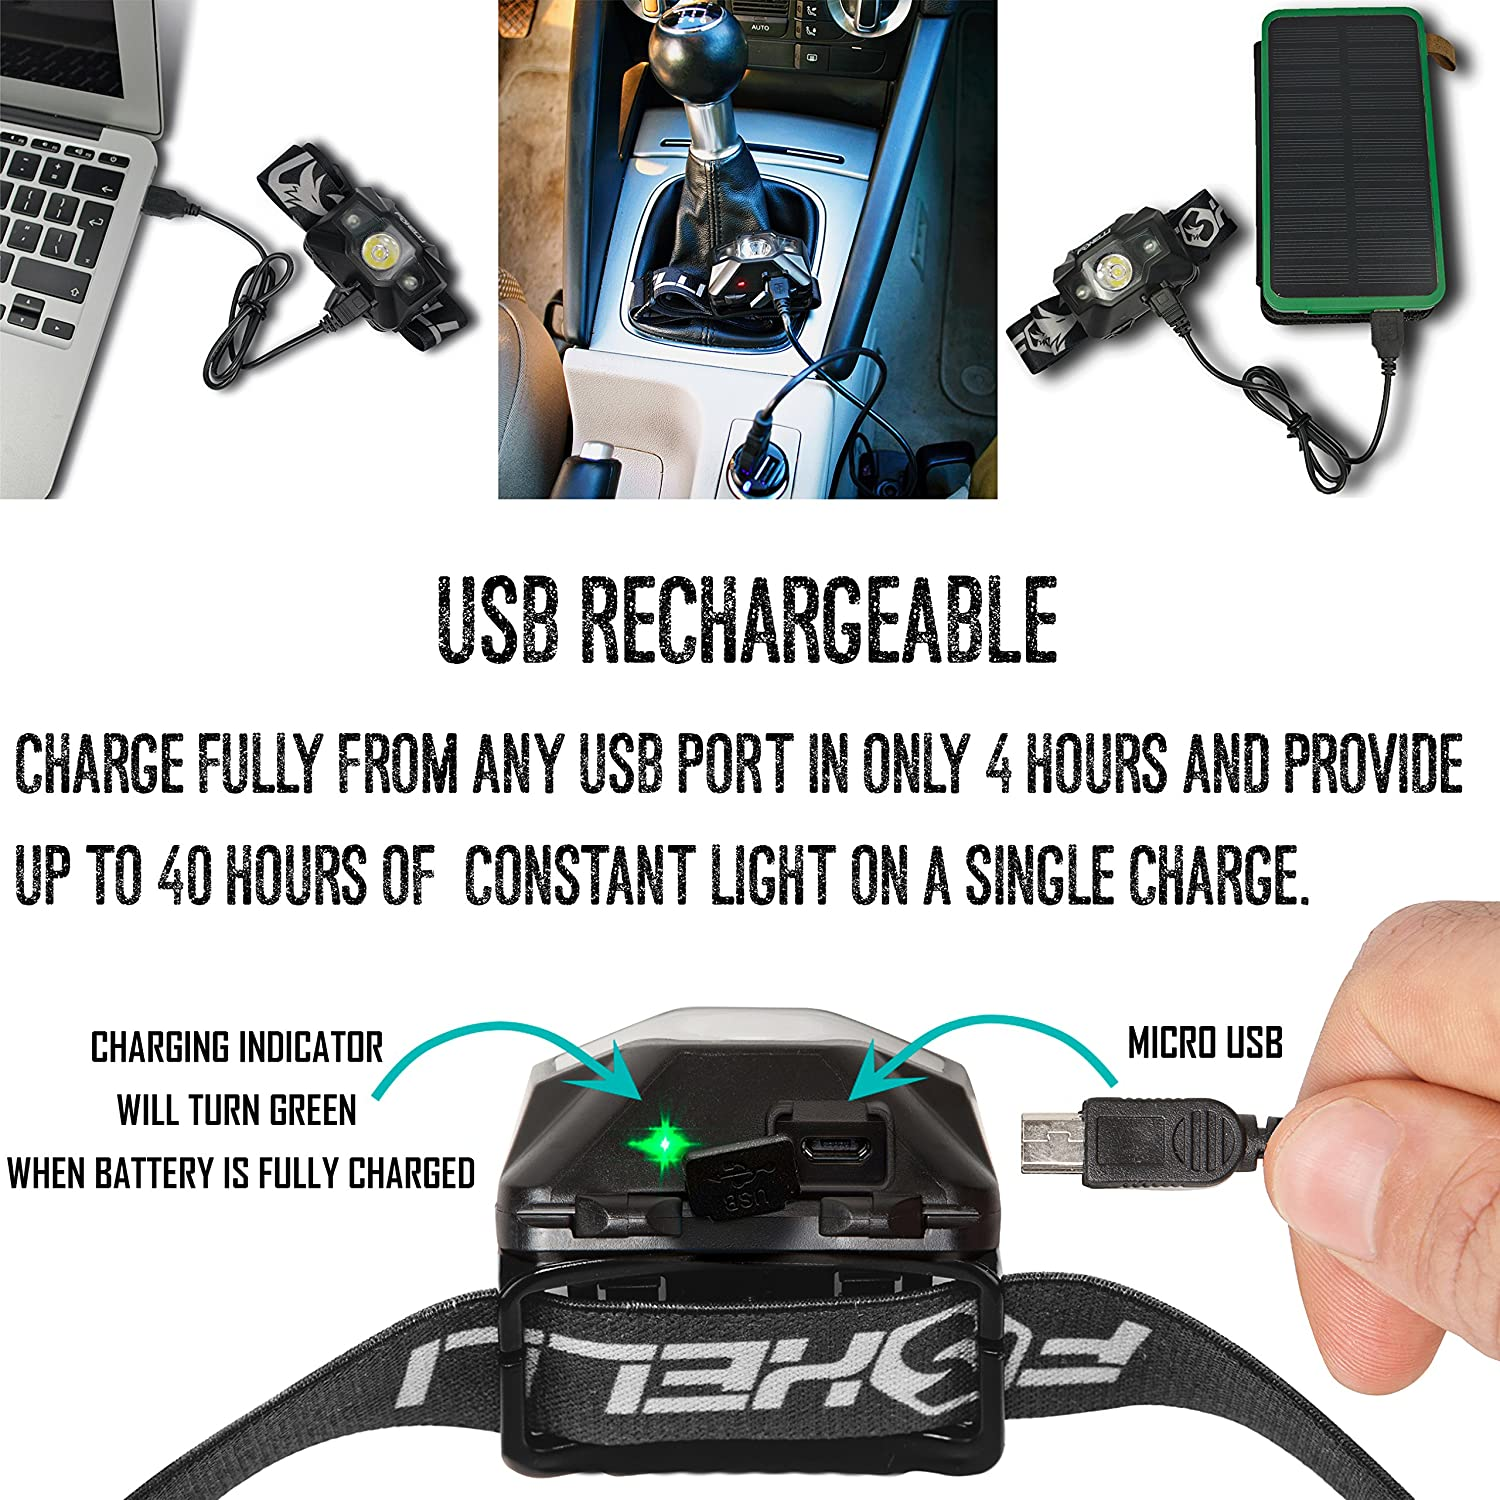 180 Lumen Foxelli 2-Pack USB Rechargeable Headlamp Flashlight up to 40 Hours